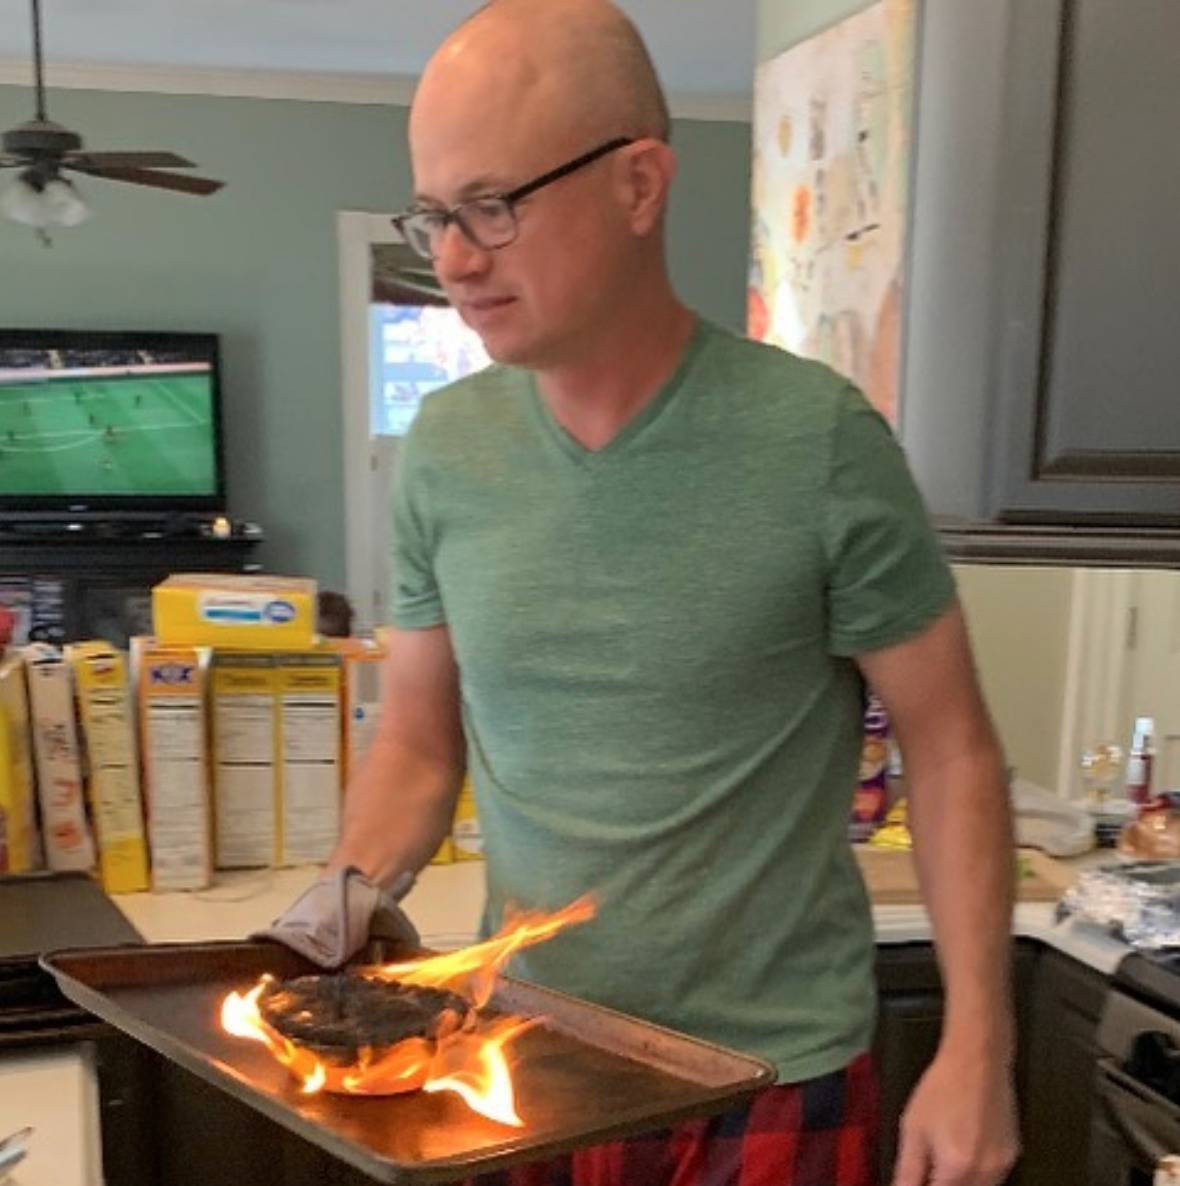 man holding baking tray with chicken pot pie on fire